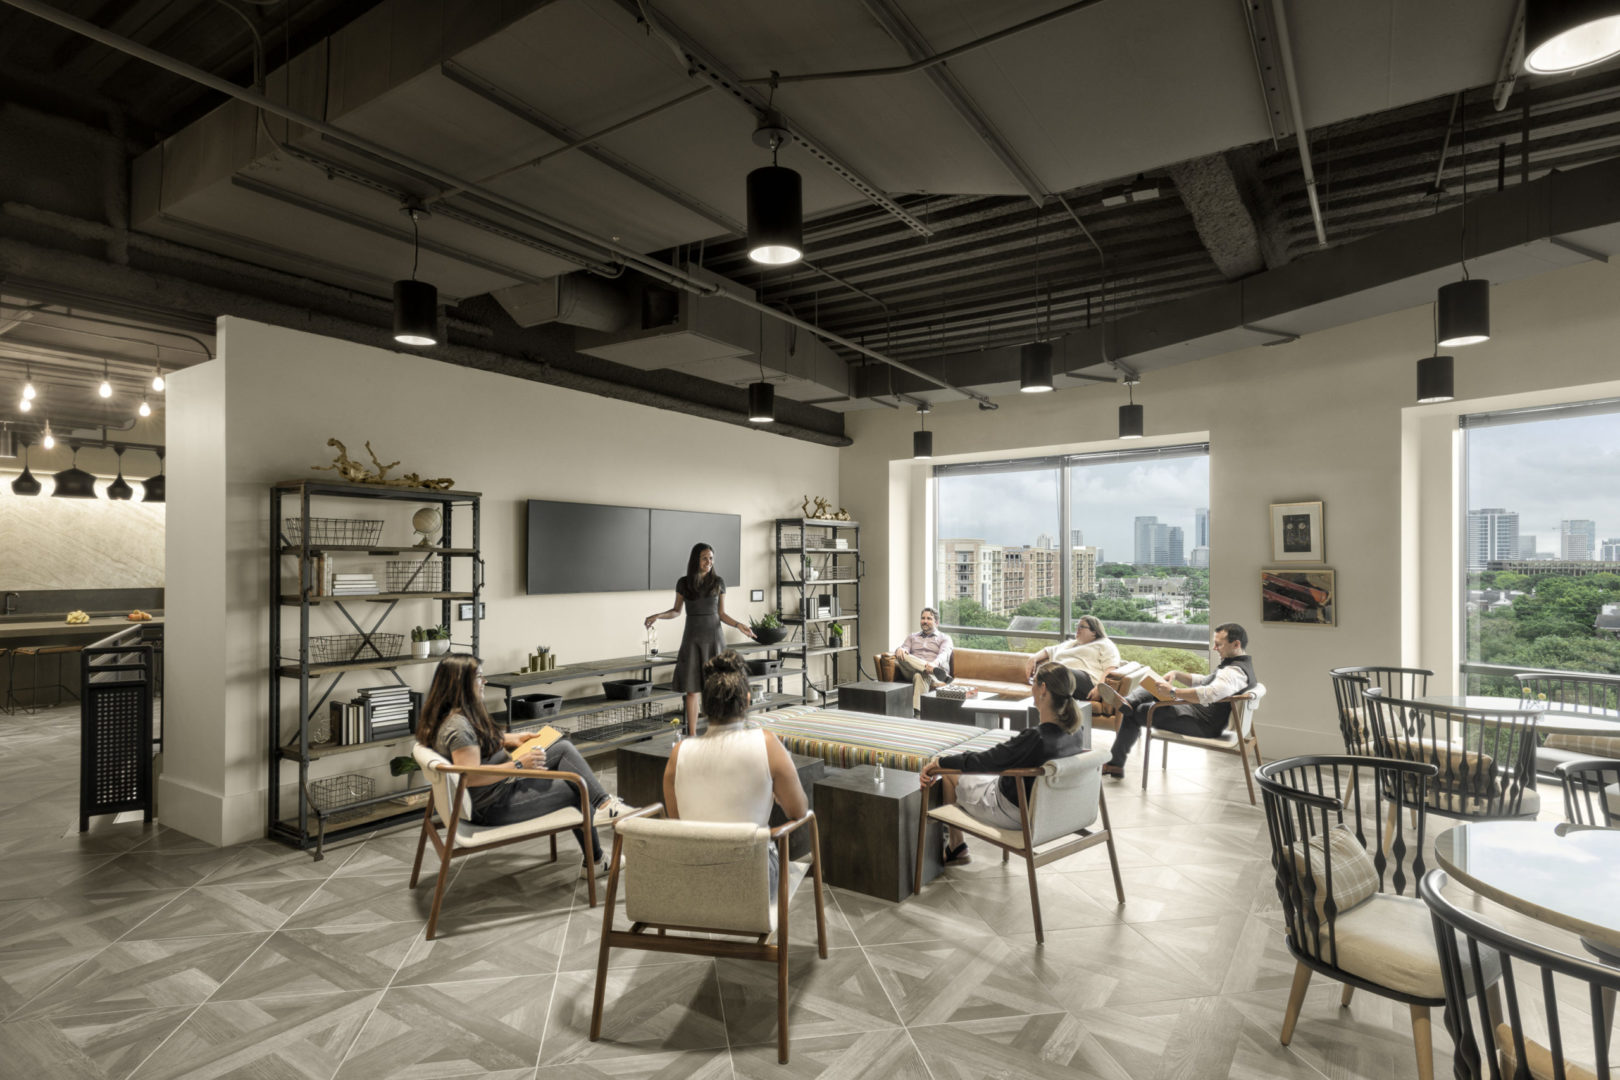 Encino Energy_Multifunction Space Design with people